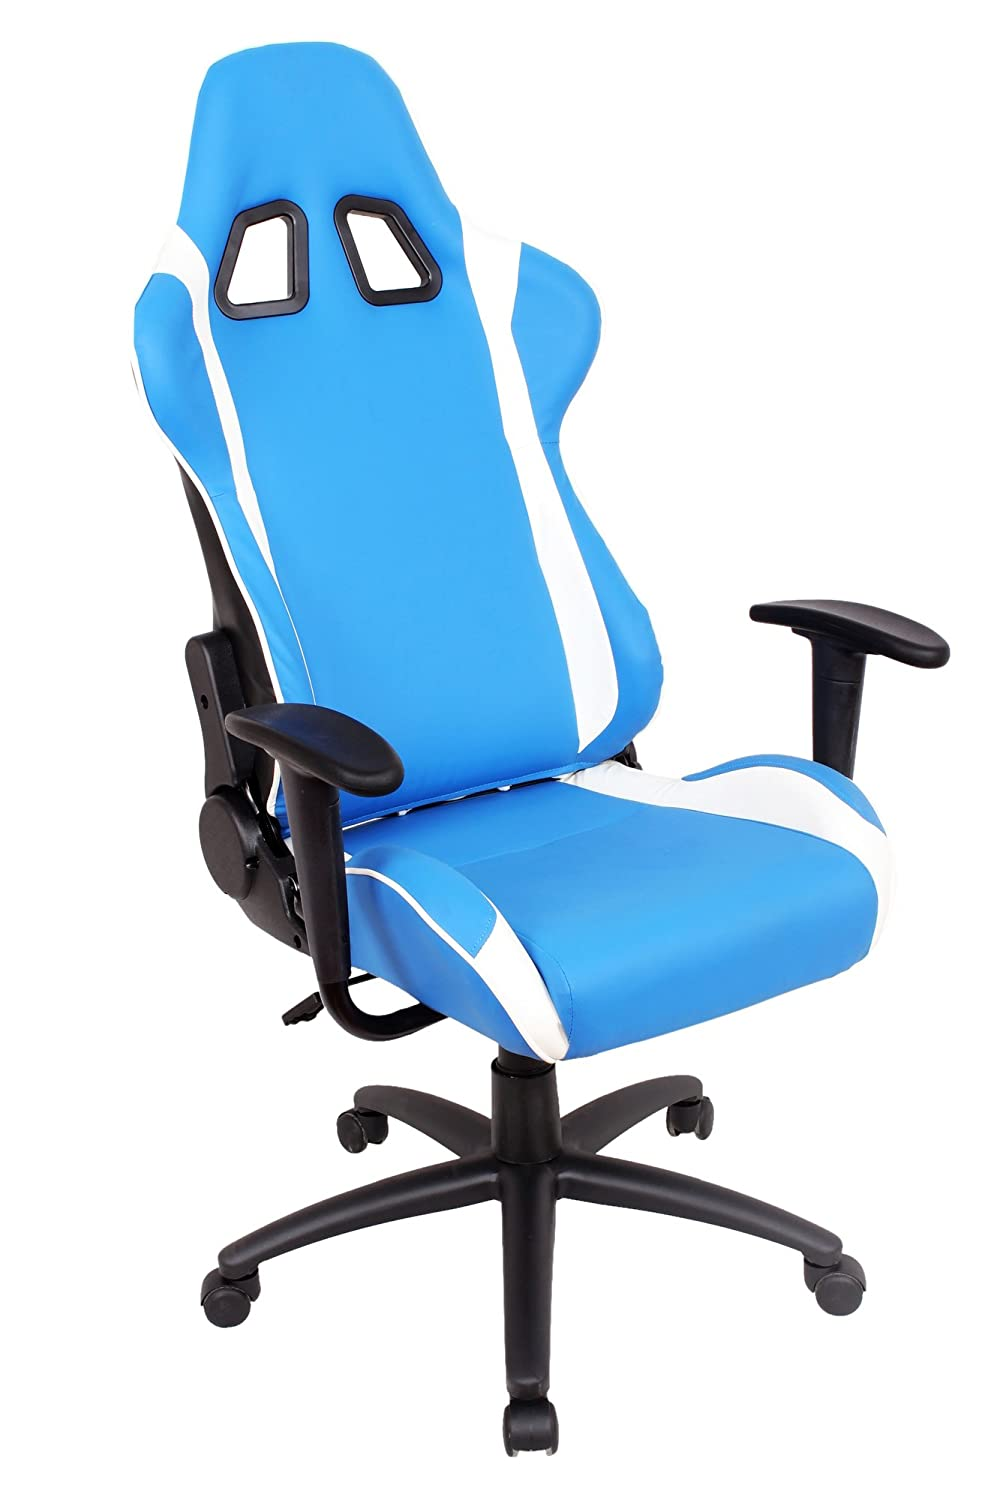 lounge office chair. Amazon.com: EZ Lounge Racing Car Seat Modern Office Chair, Blue/White: Kitchen \u0026 Dining Chair